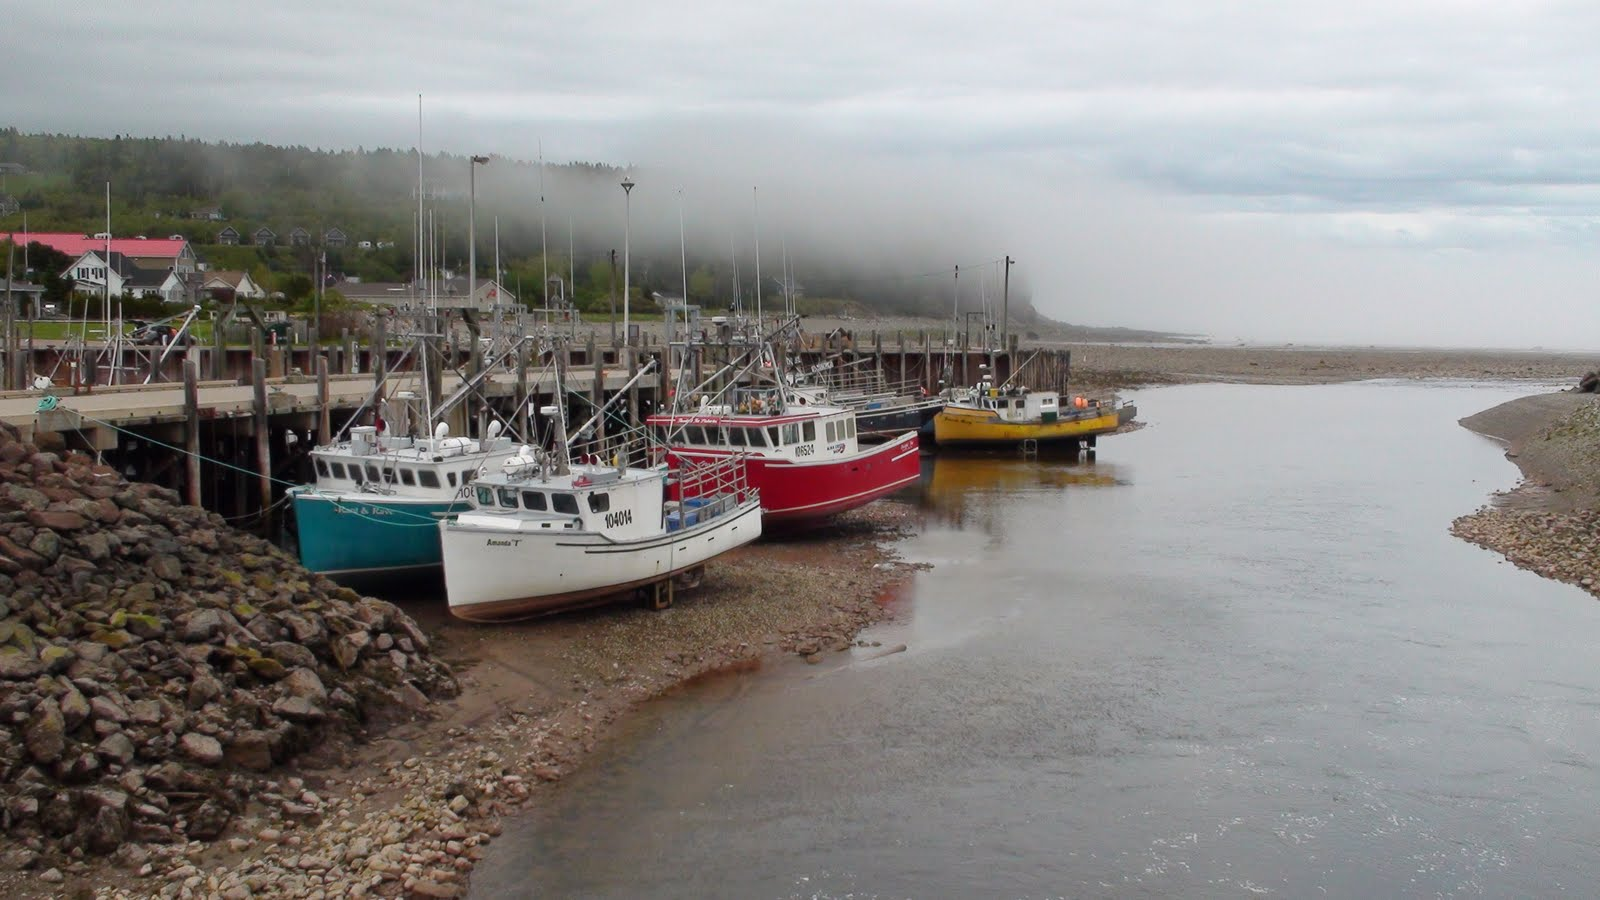 Low tide in the town of Alma on the Bay of Fundy NB. Fishing boats sitting on the bottom of the harbour.